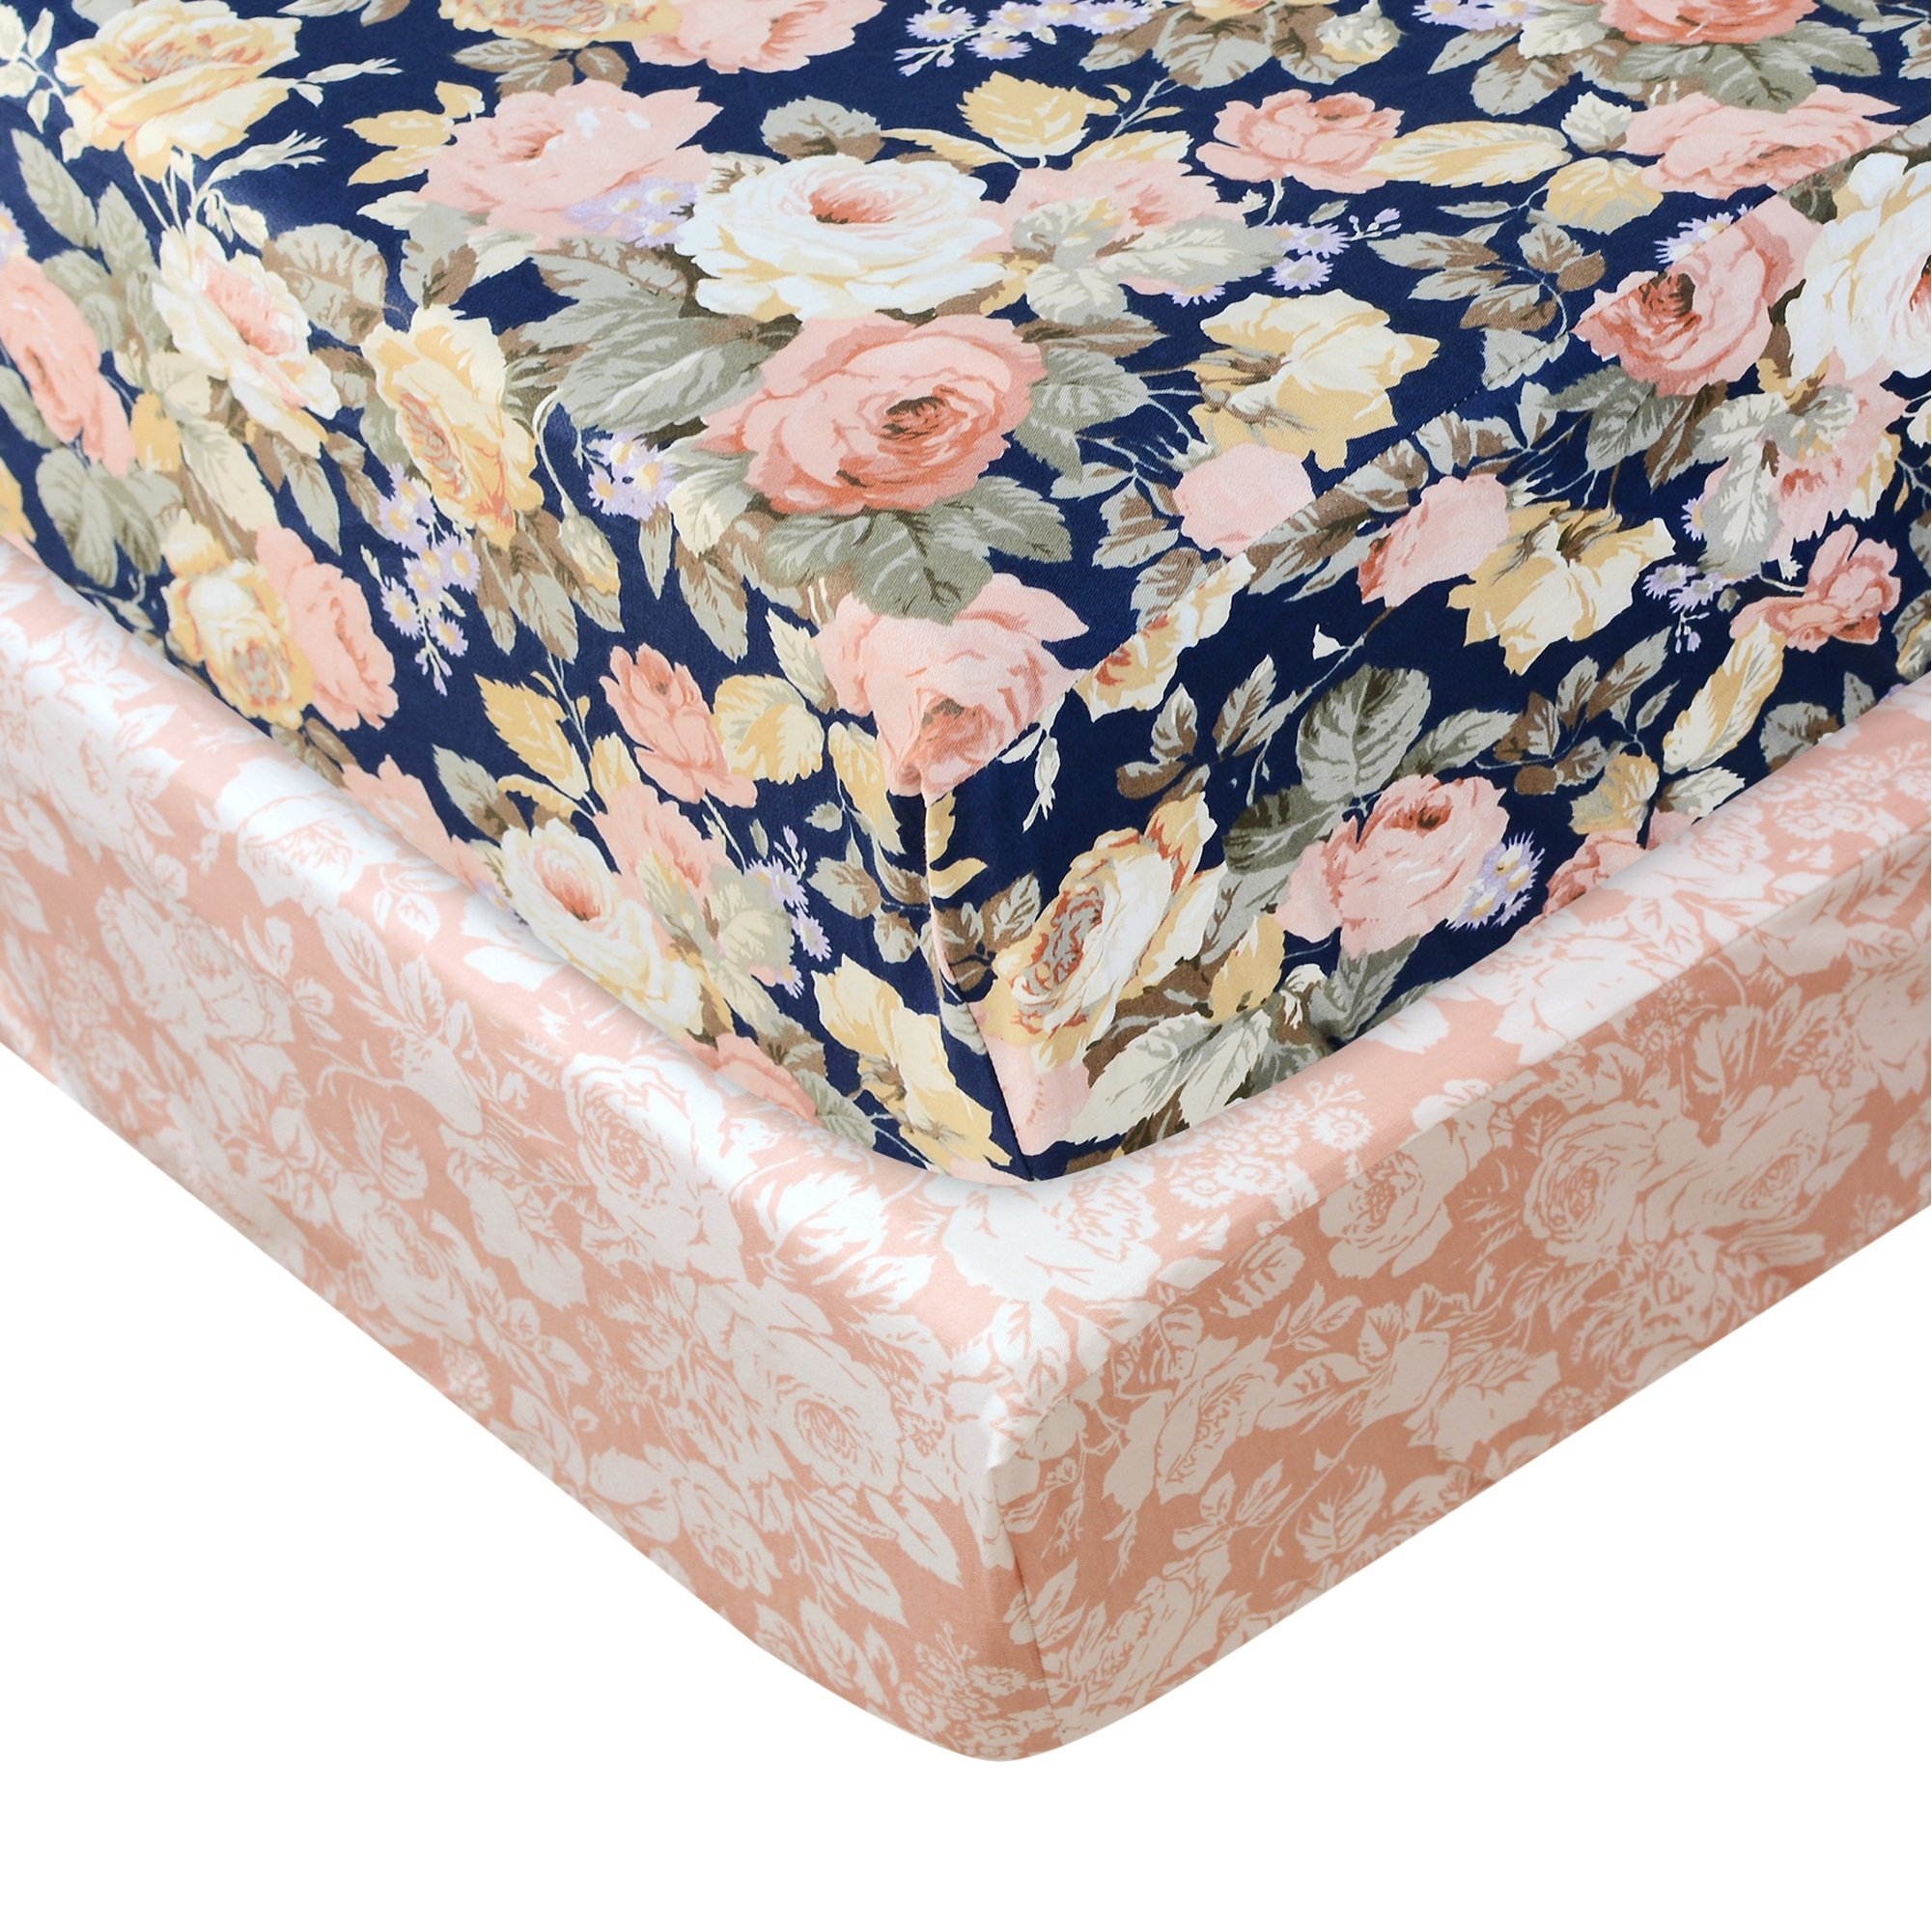 Brandream Floral Crib Sheet Blush Pink Floral Fitted Crib Sheet Chic Rose Baby Bedding Vintage Nursery Bedding Set for Girl, Navy, 2 Pack by Brandream